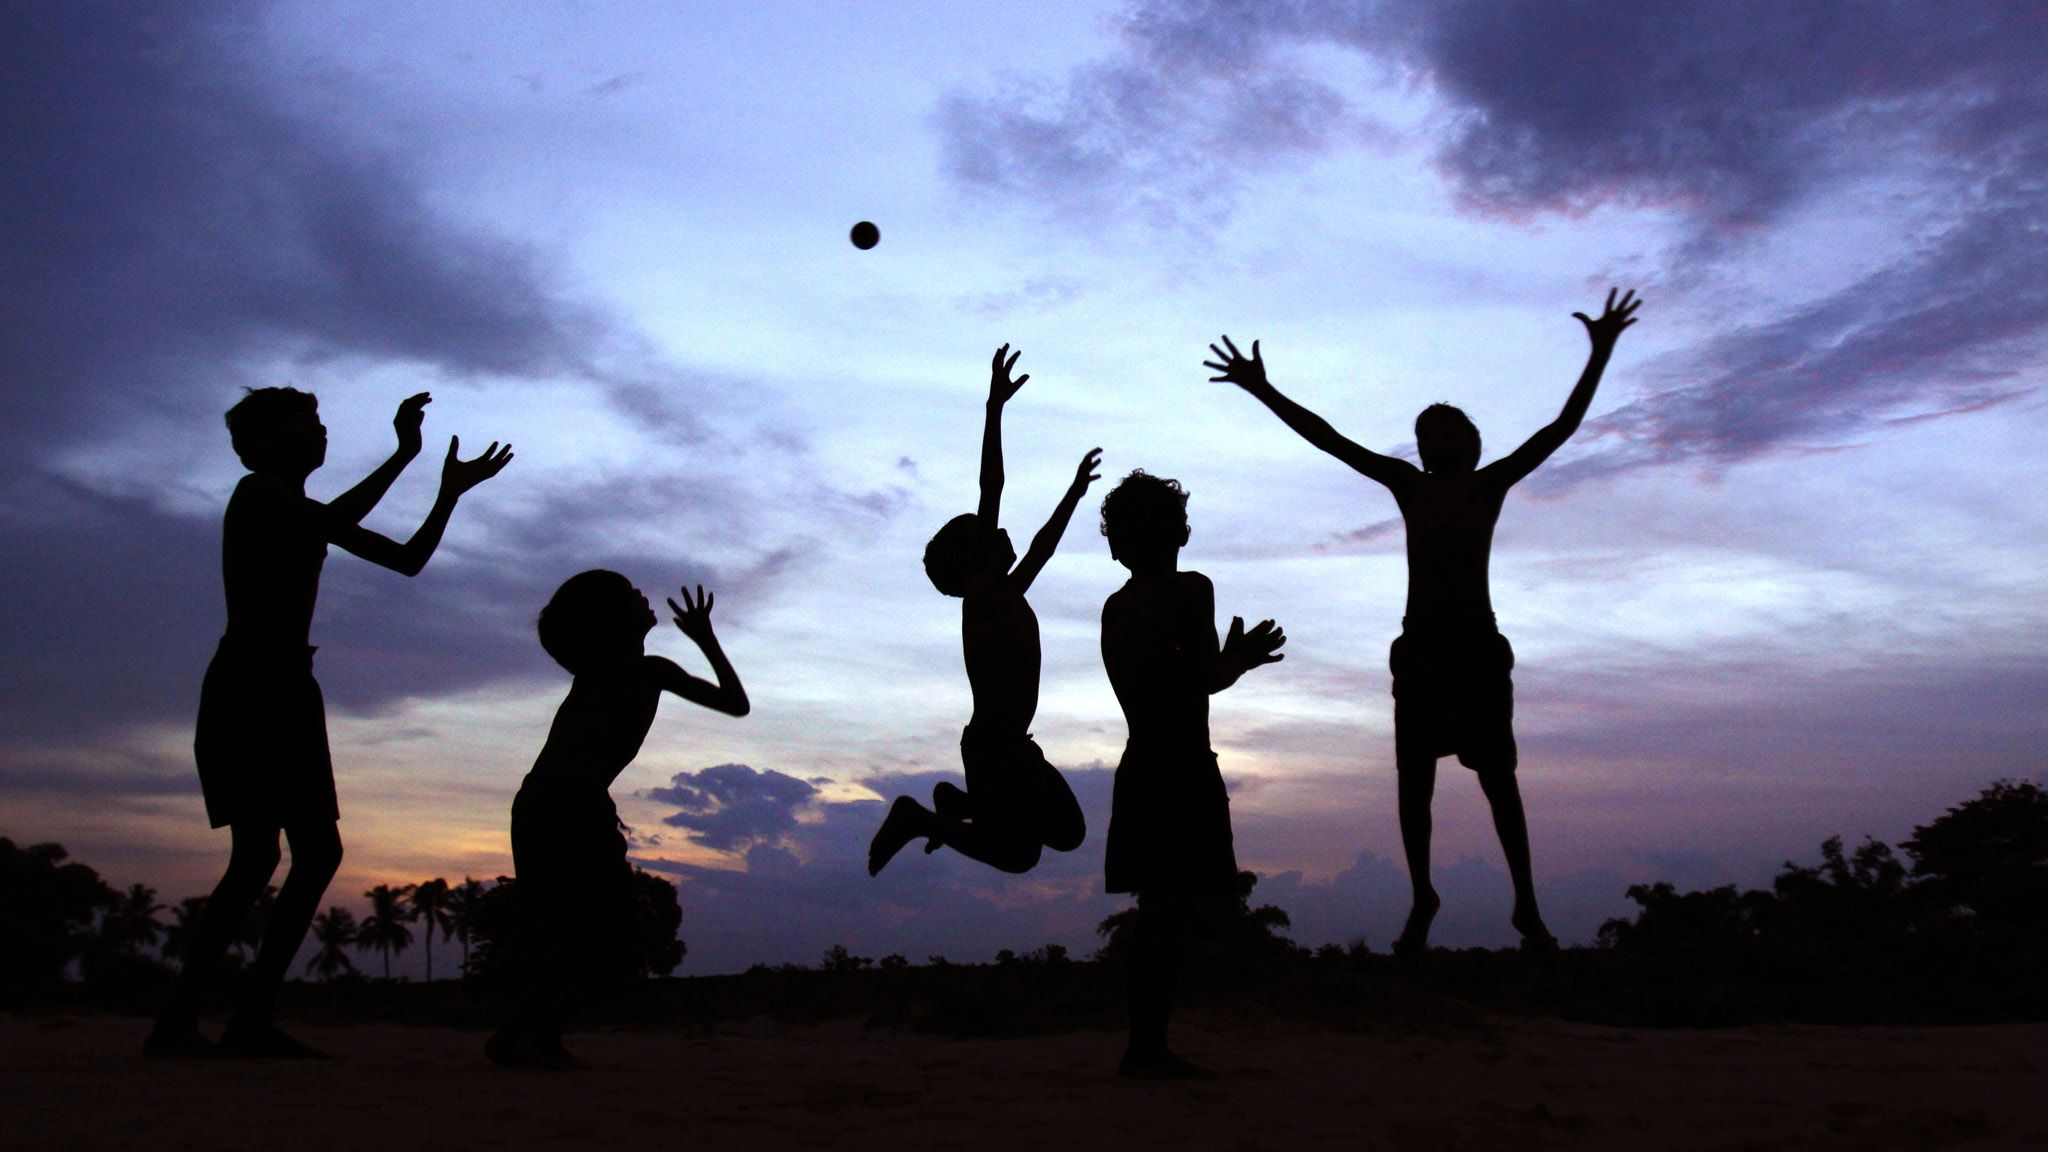 Children playing together a foster parent